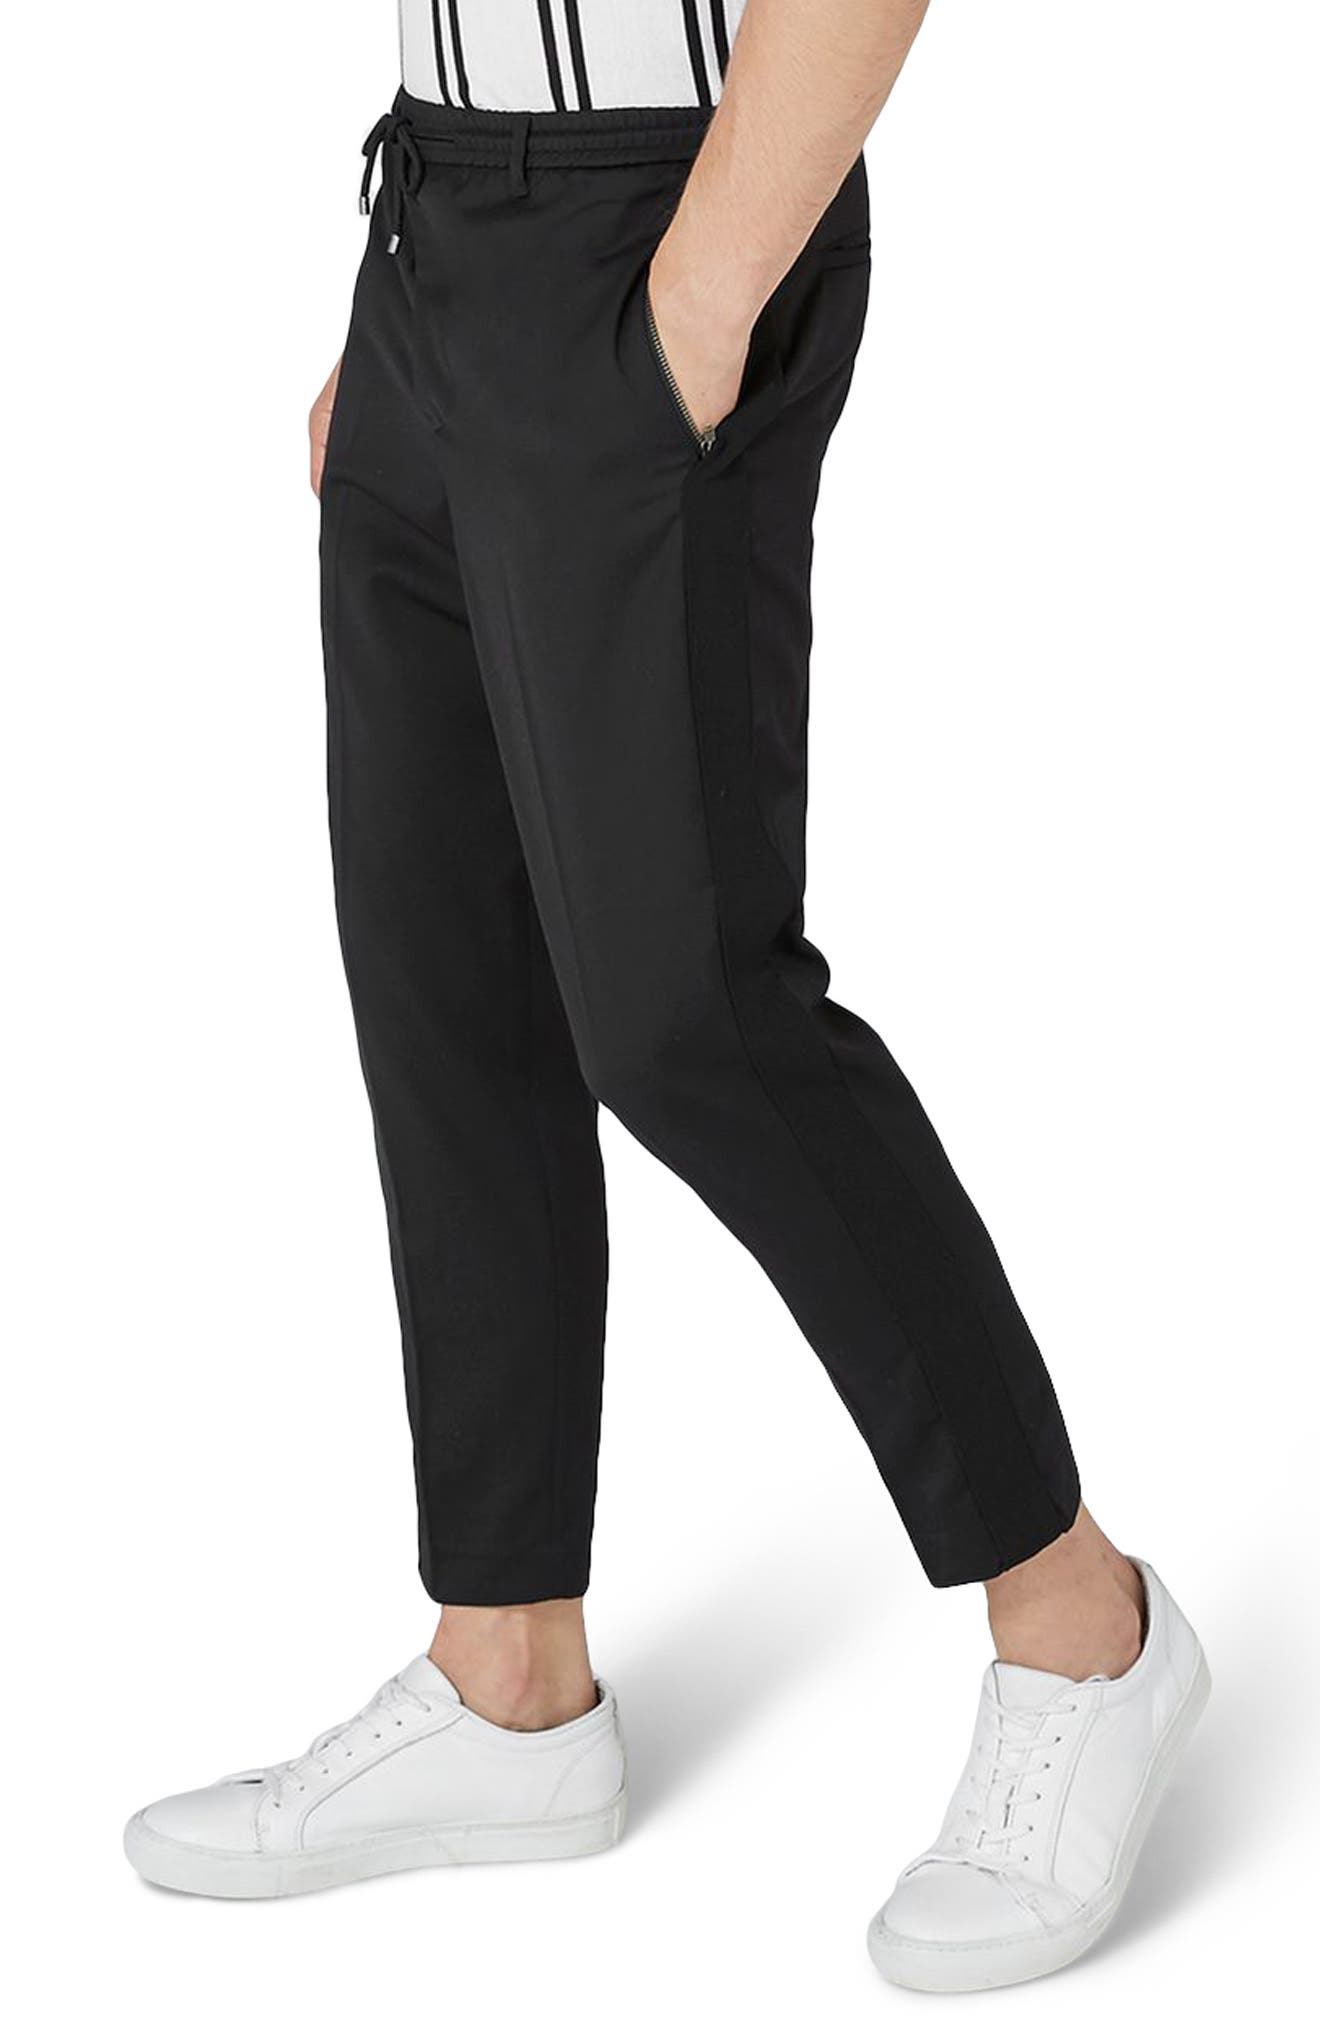 Side Zip Dress Pants,                             Main thumbnail 1, color,                             Black